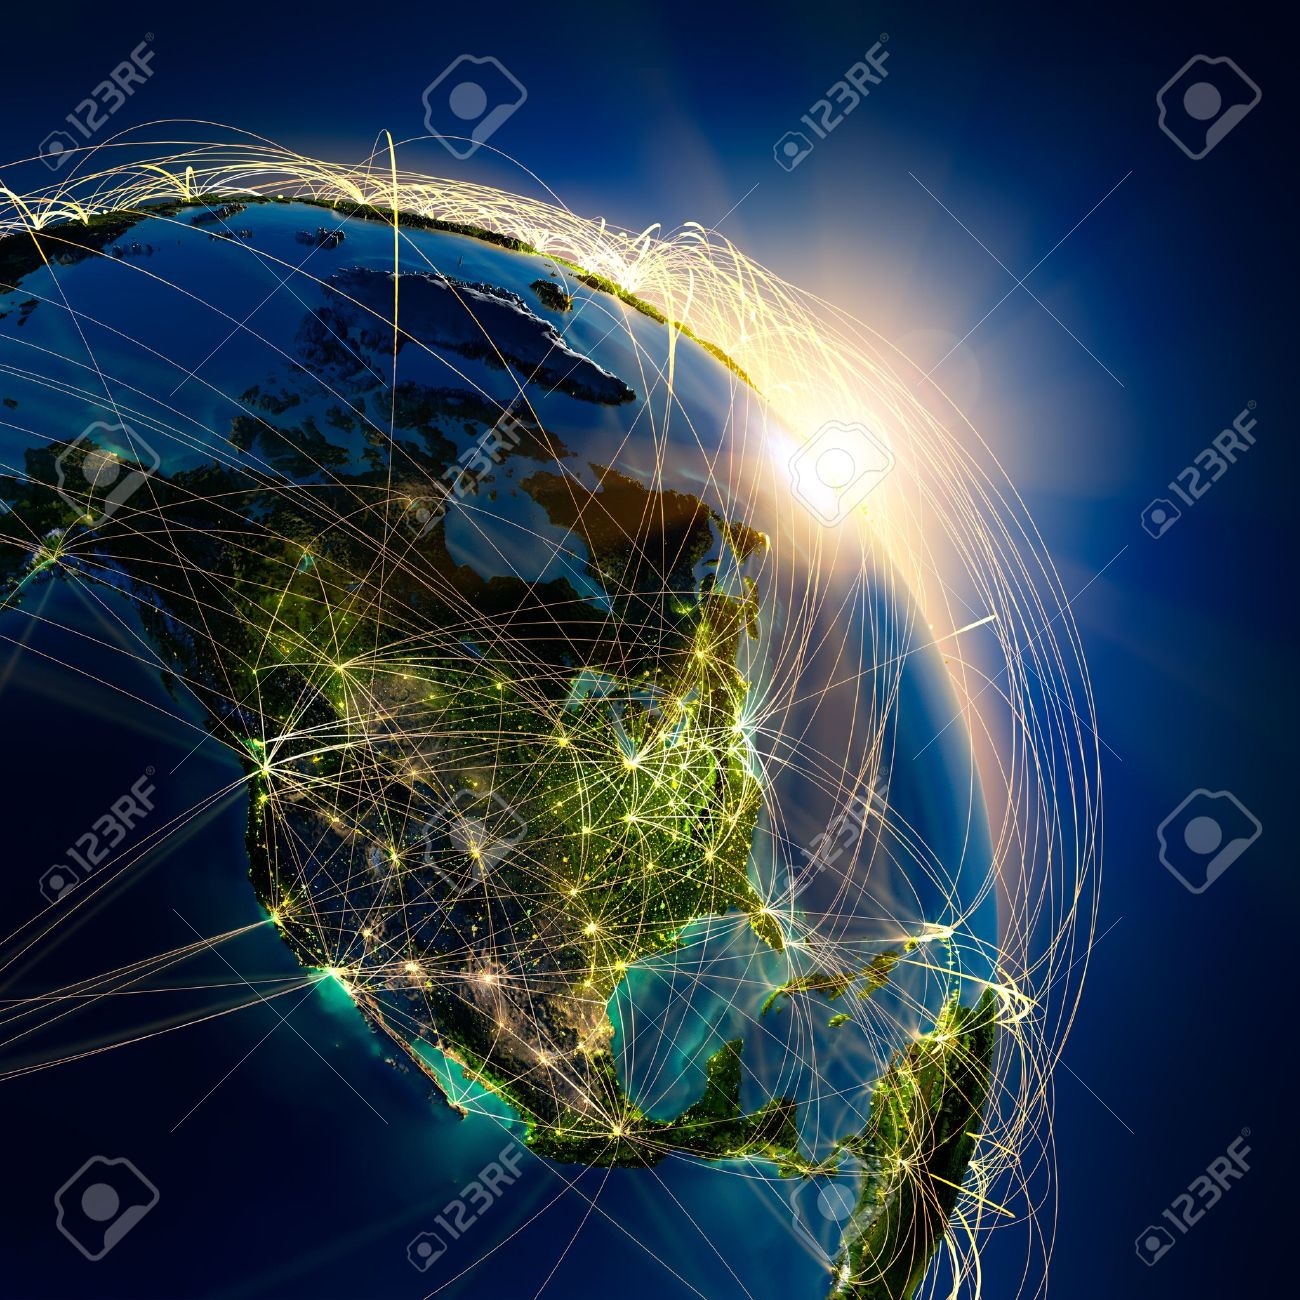 Highly detailed planet Earth at night, lit by the rising sun, with embossed continents, illuminated by light of cities, translucent and reflective ocean. Earth is surrounded by a luminous network, representing the major air routes based on real data Stock Photo - 12305749